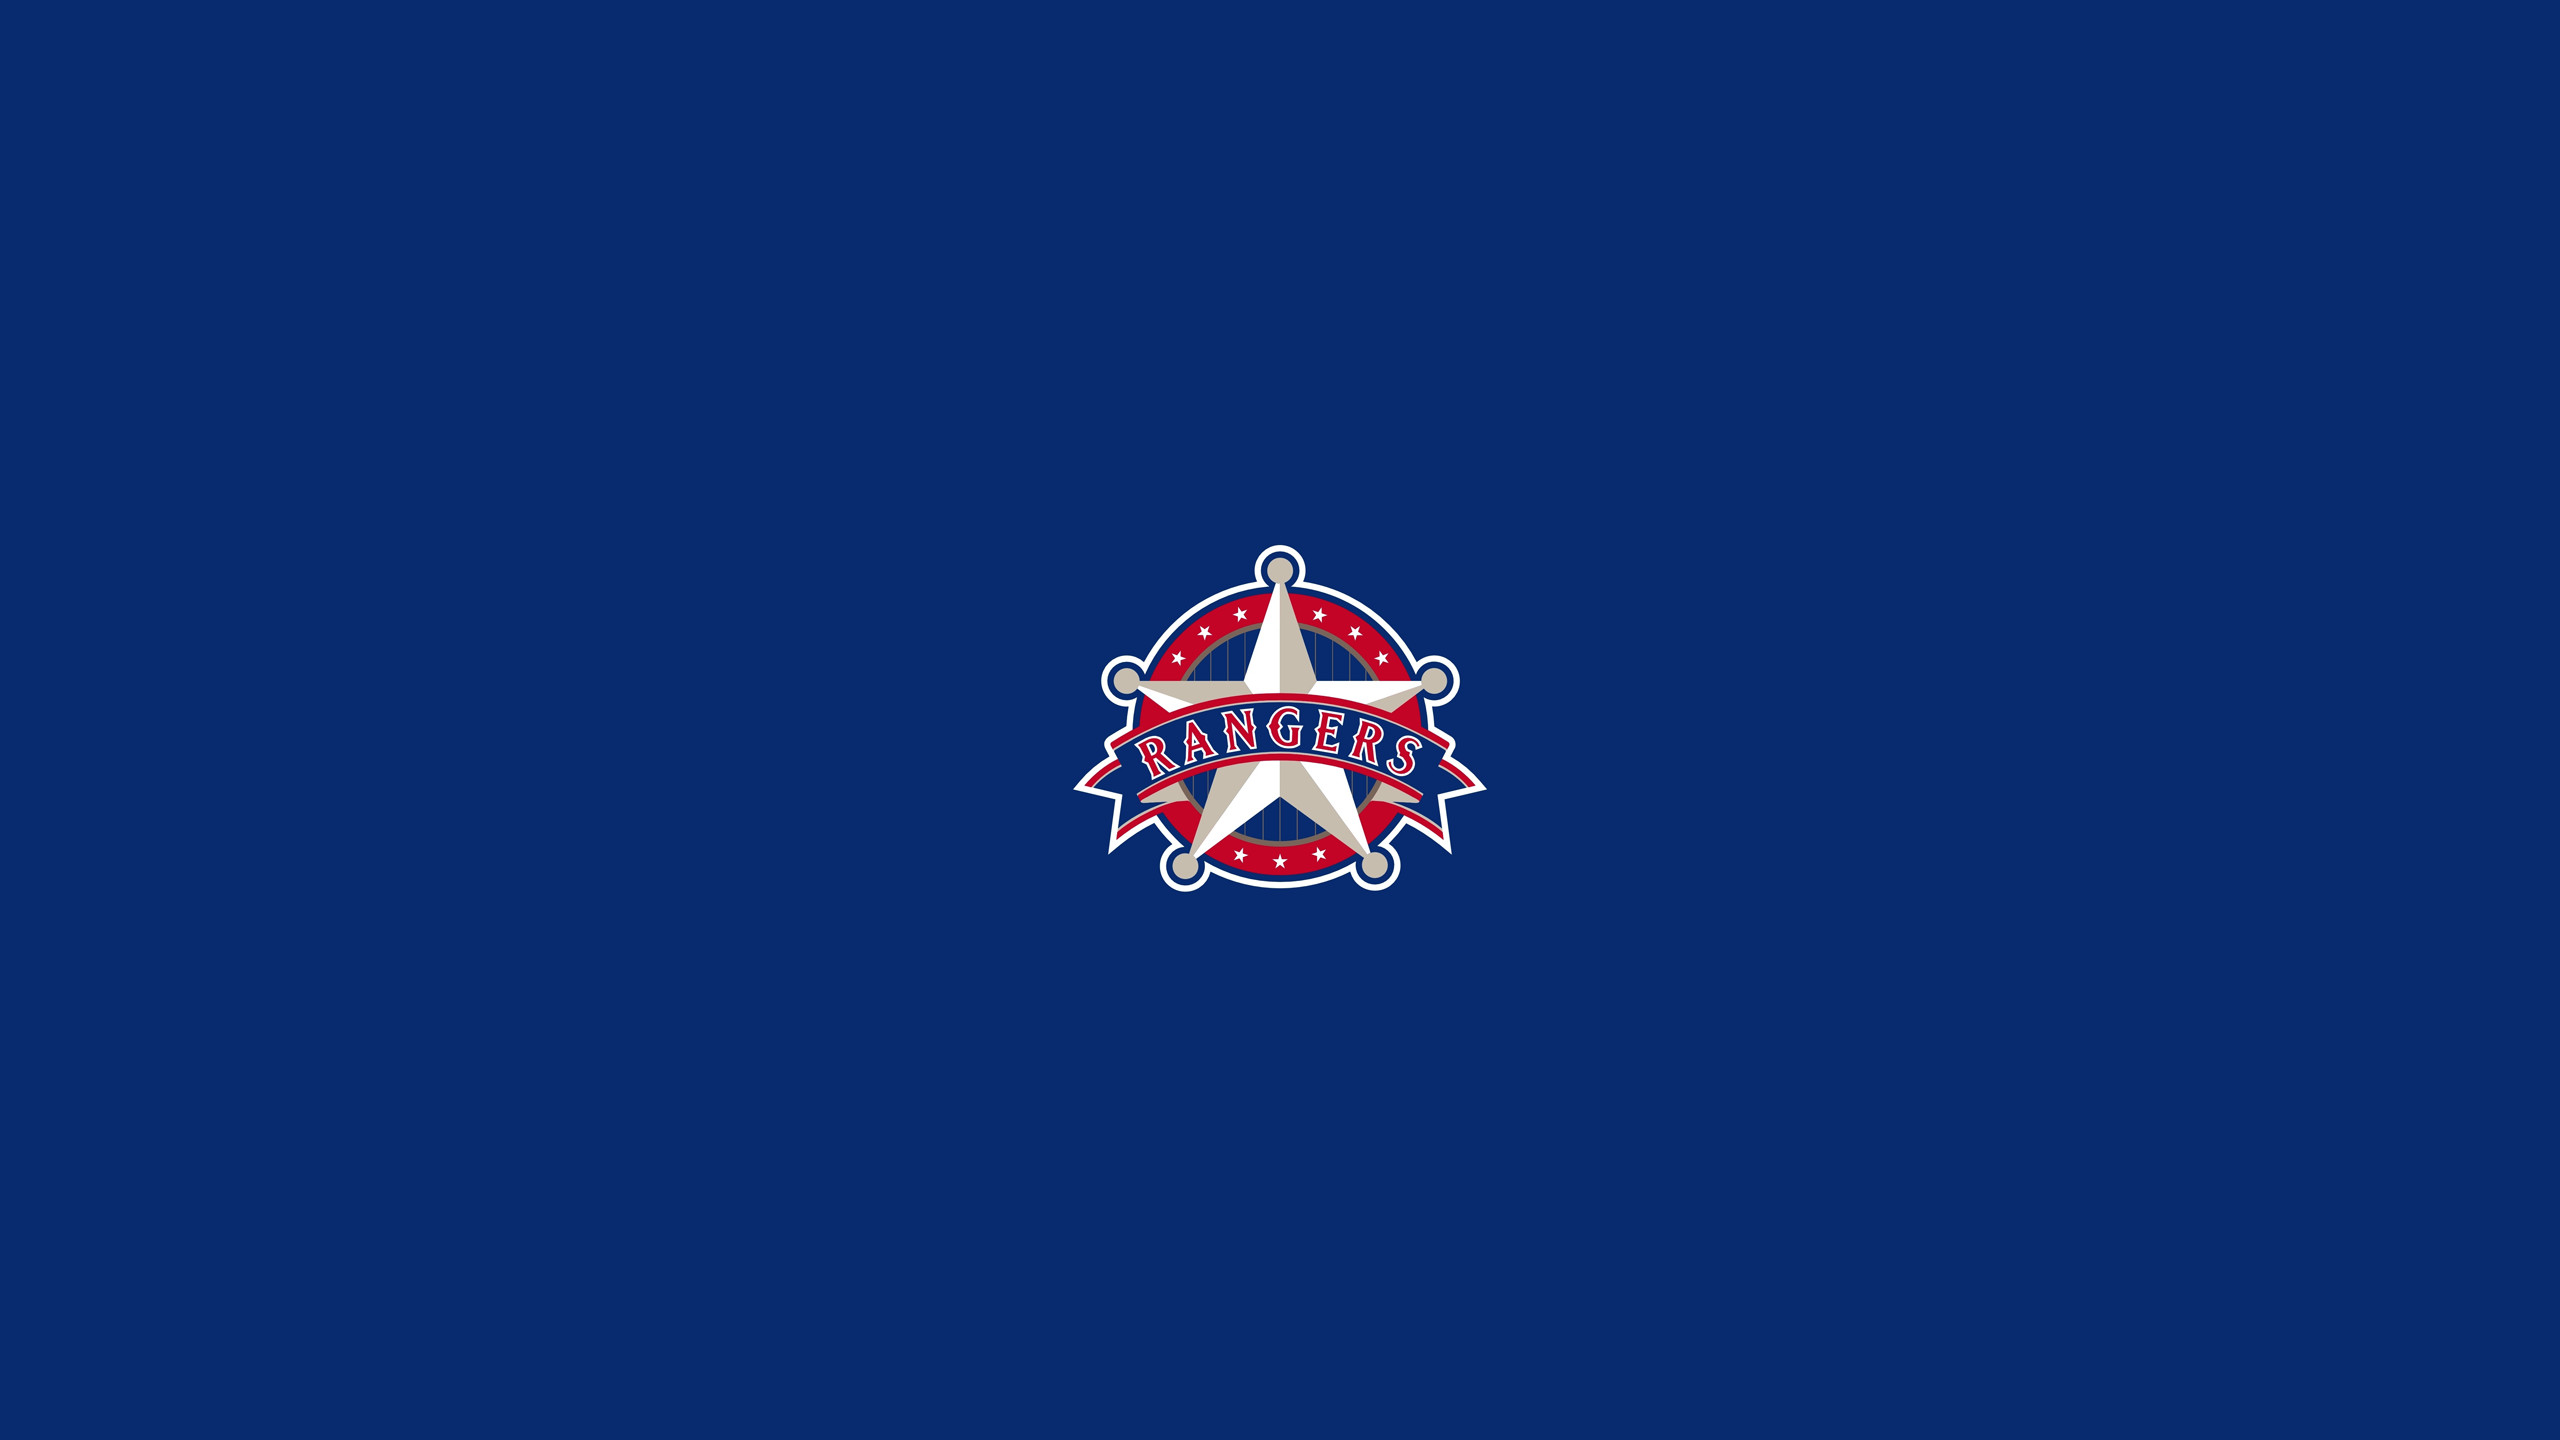 texas rangers wallpapers and screensavers (56+ images)